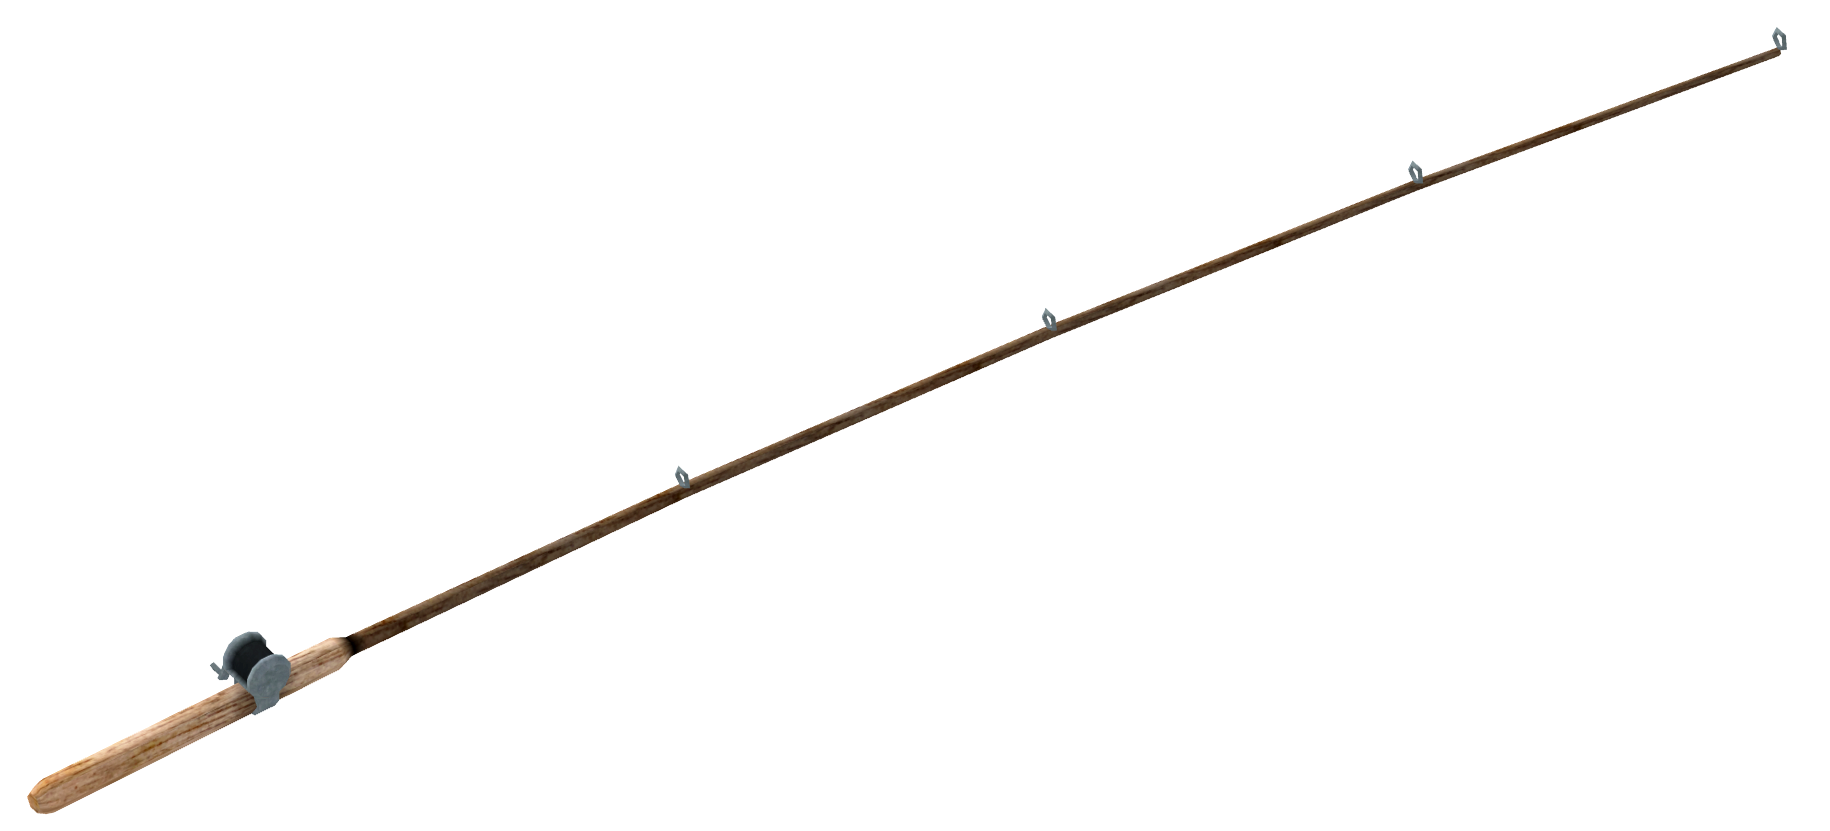 Fishing Pole PNG - 9027